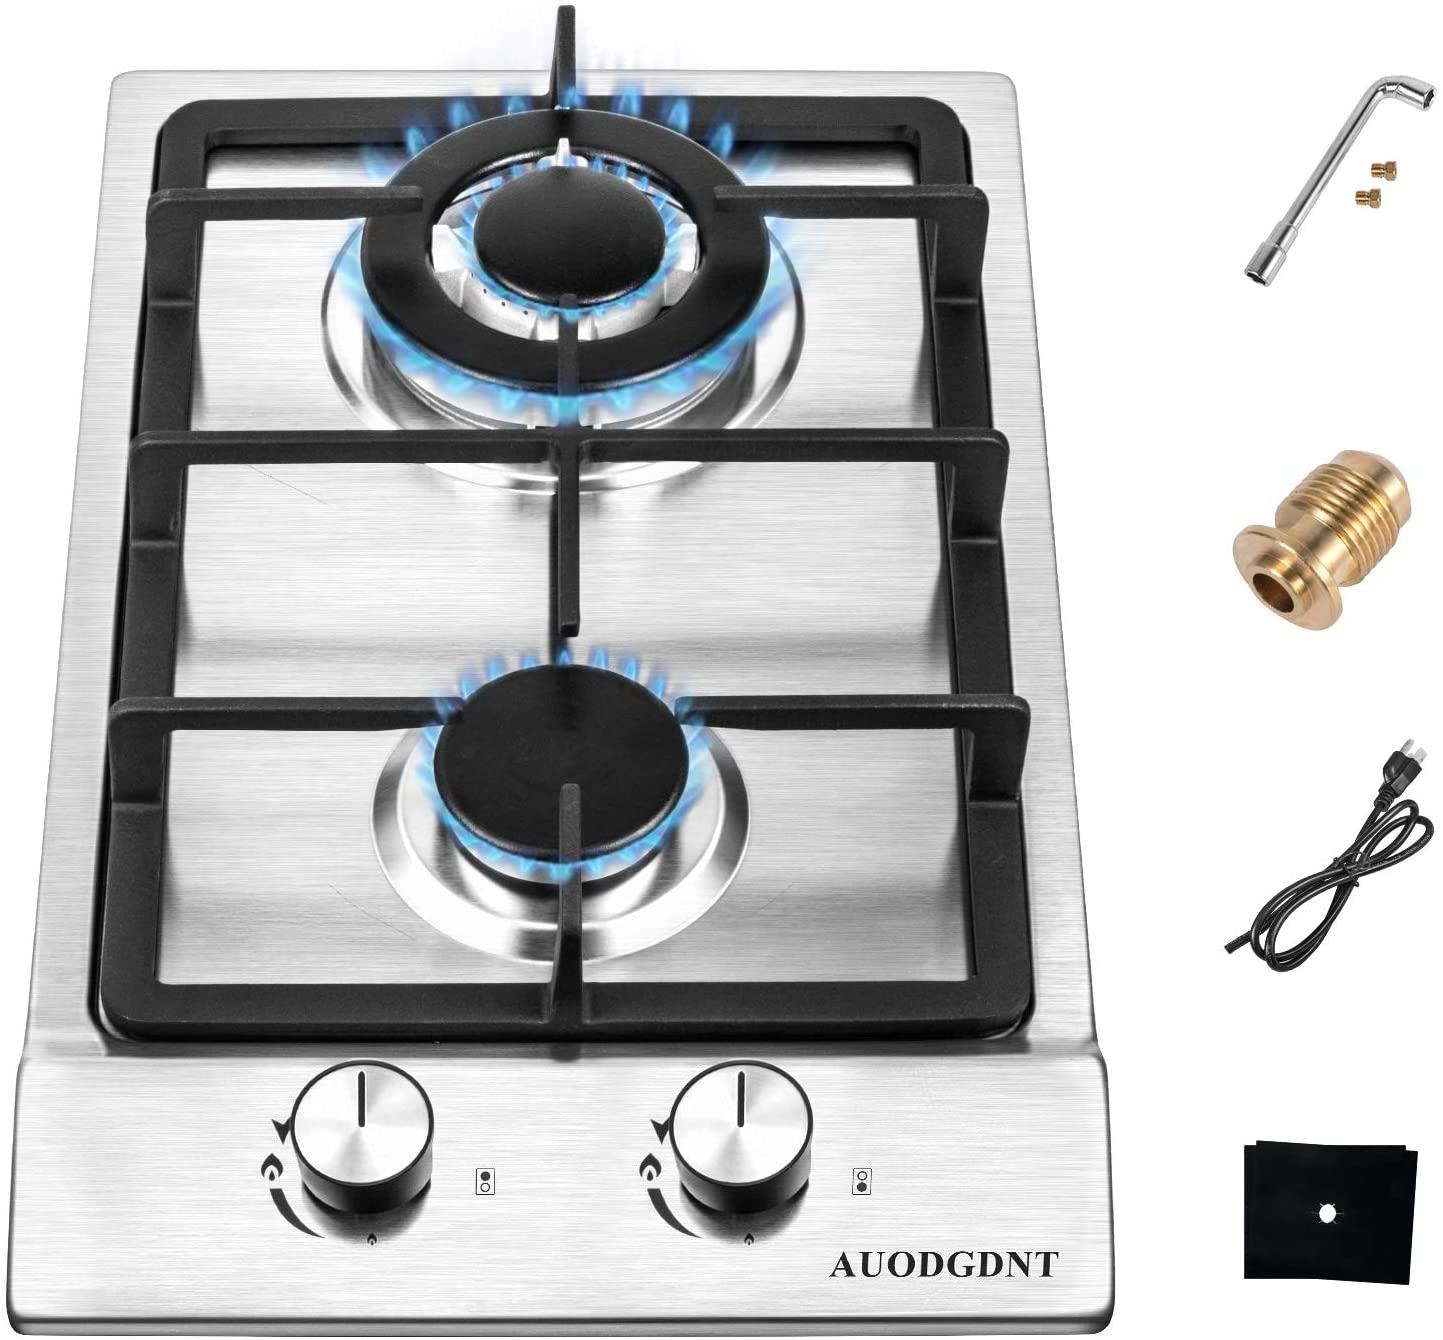 AUODGDNT Gas Stove Cooktop with Double Burners